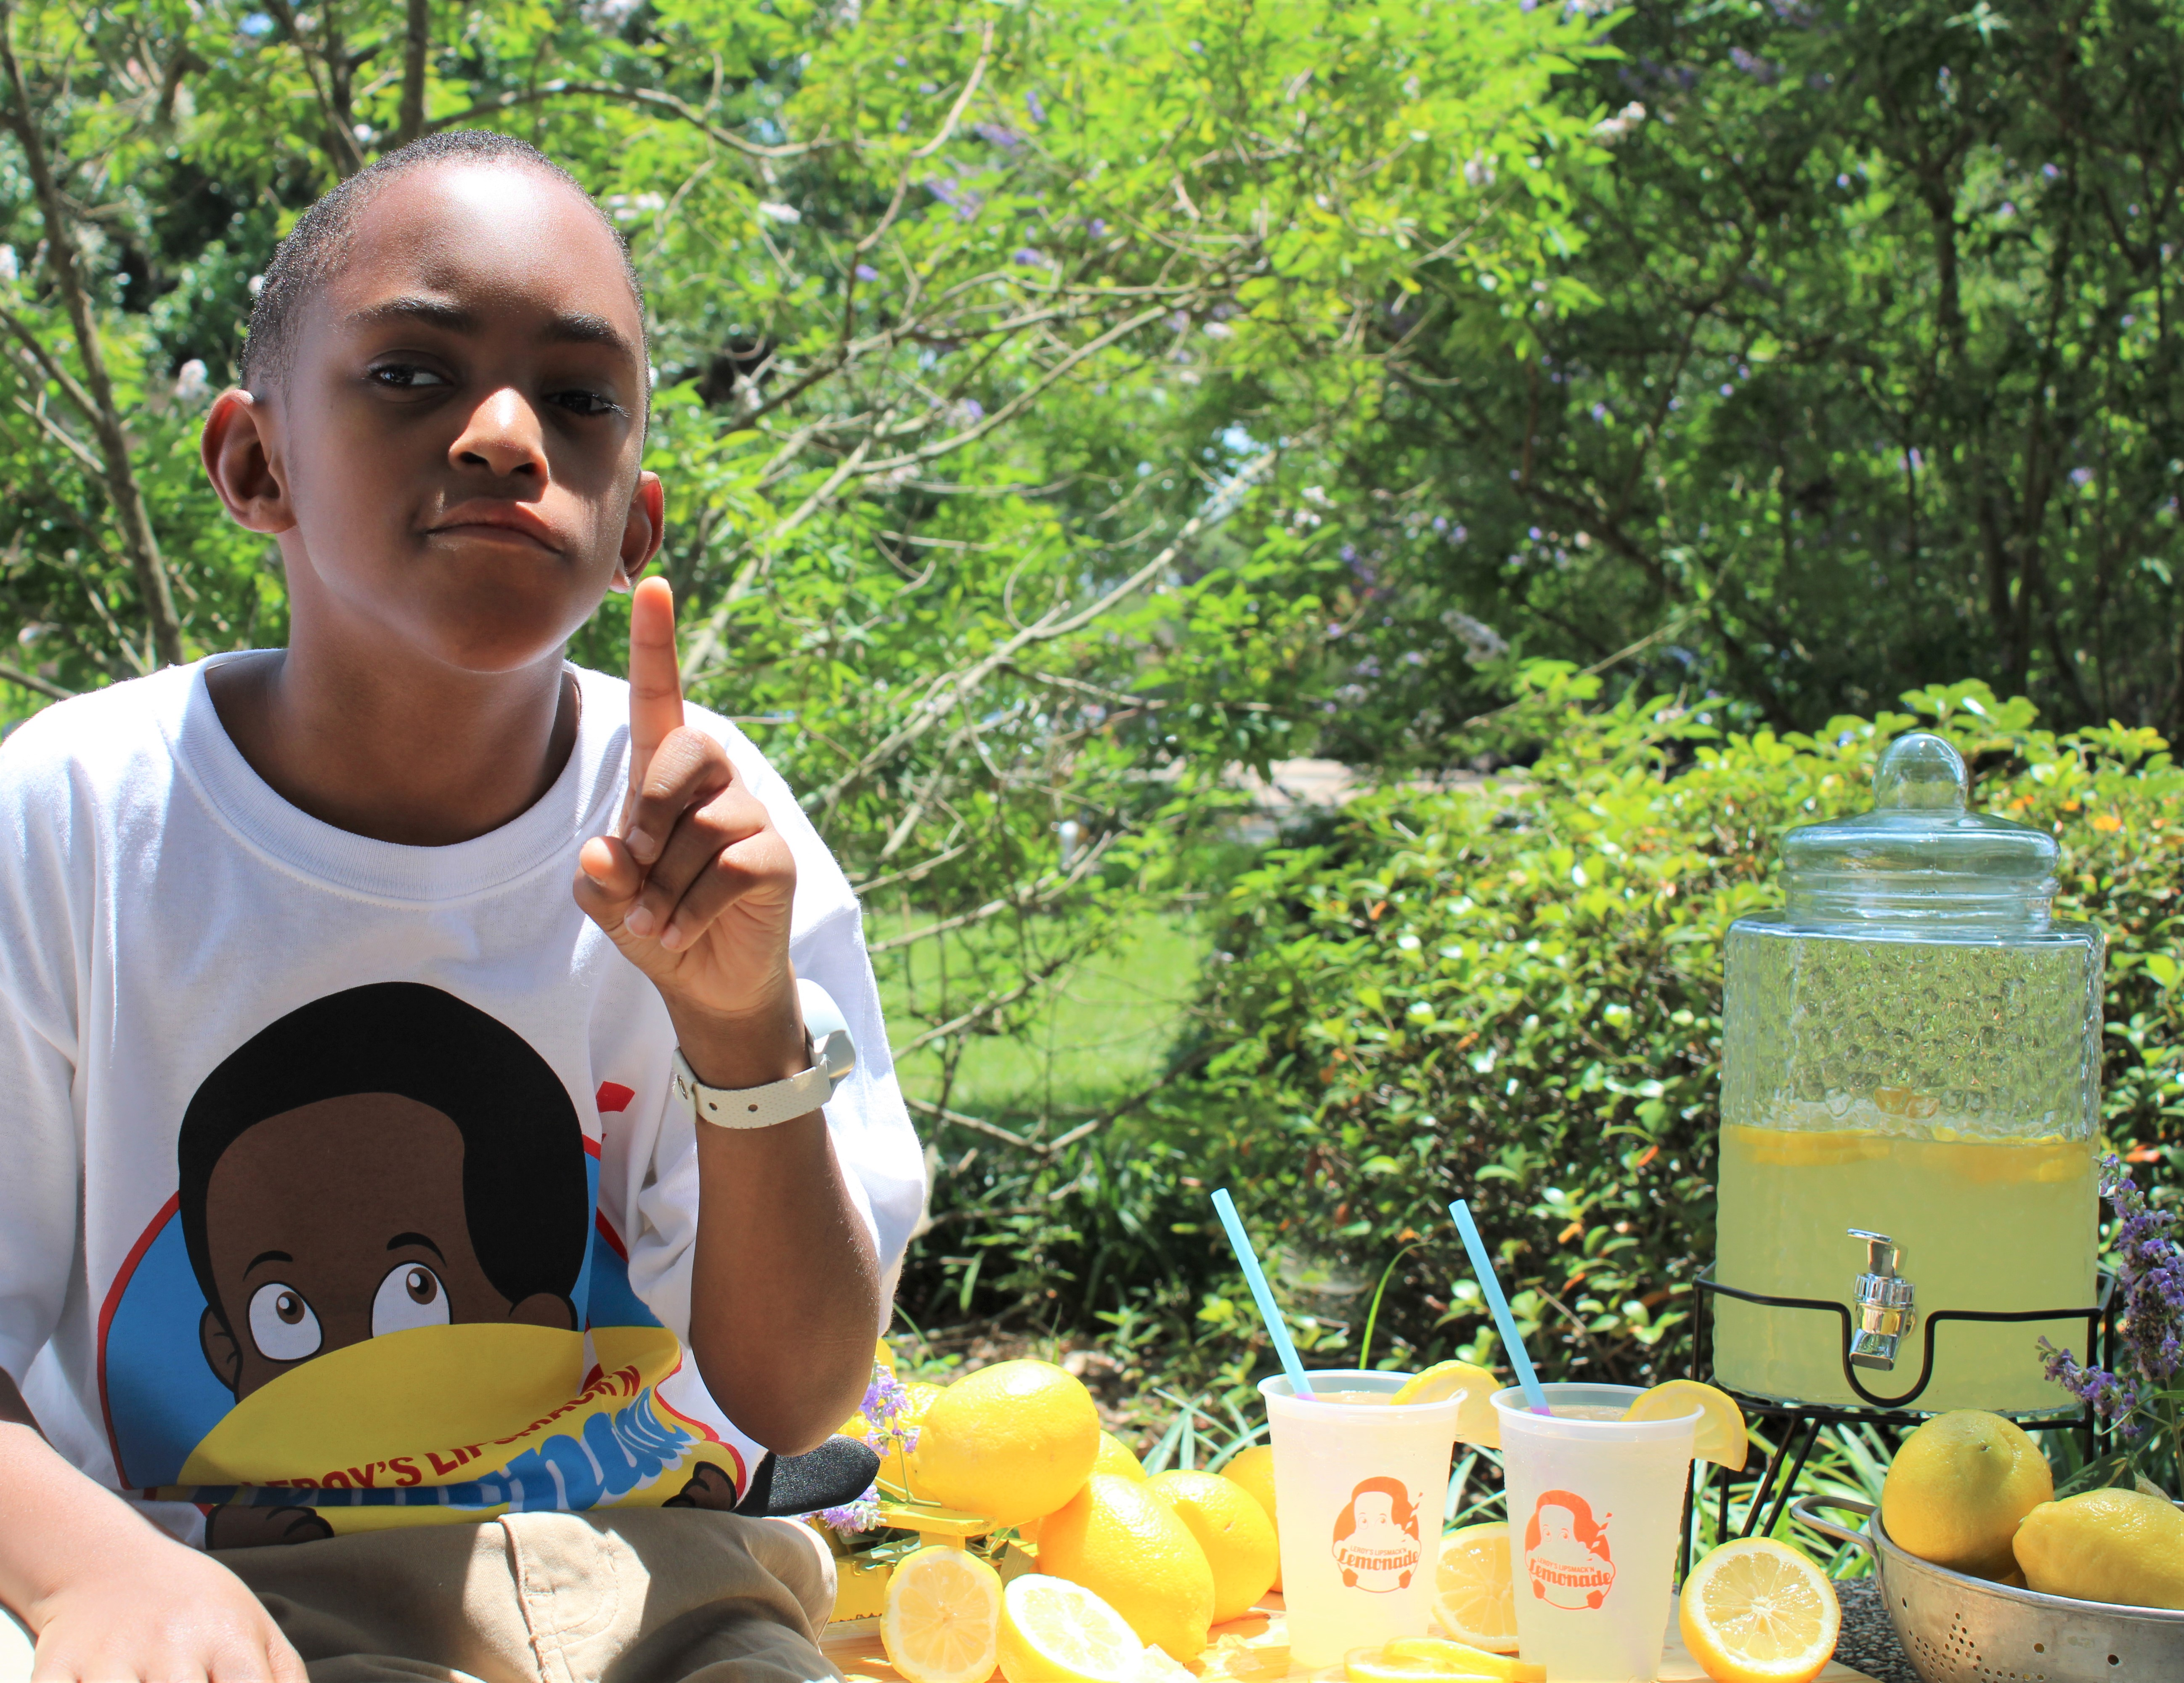 Boy sitting by lemonade.jpg thumbnail